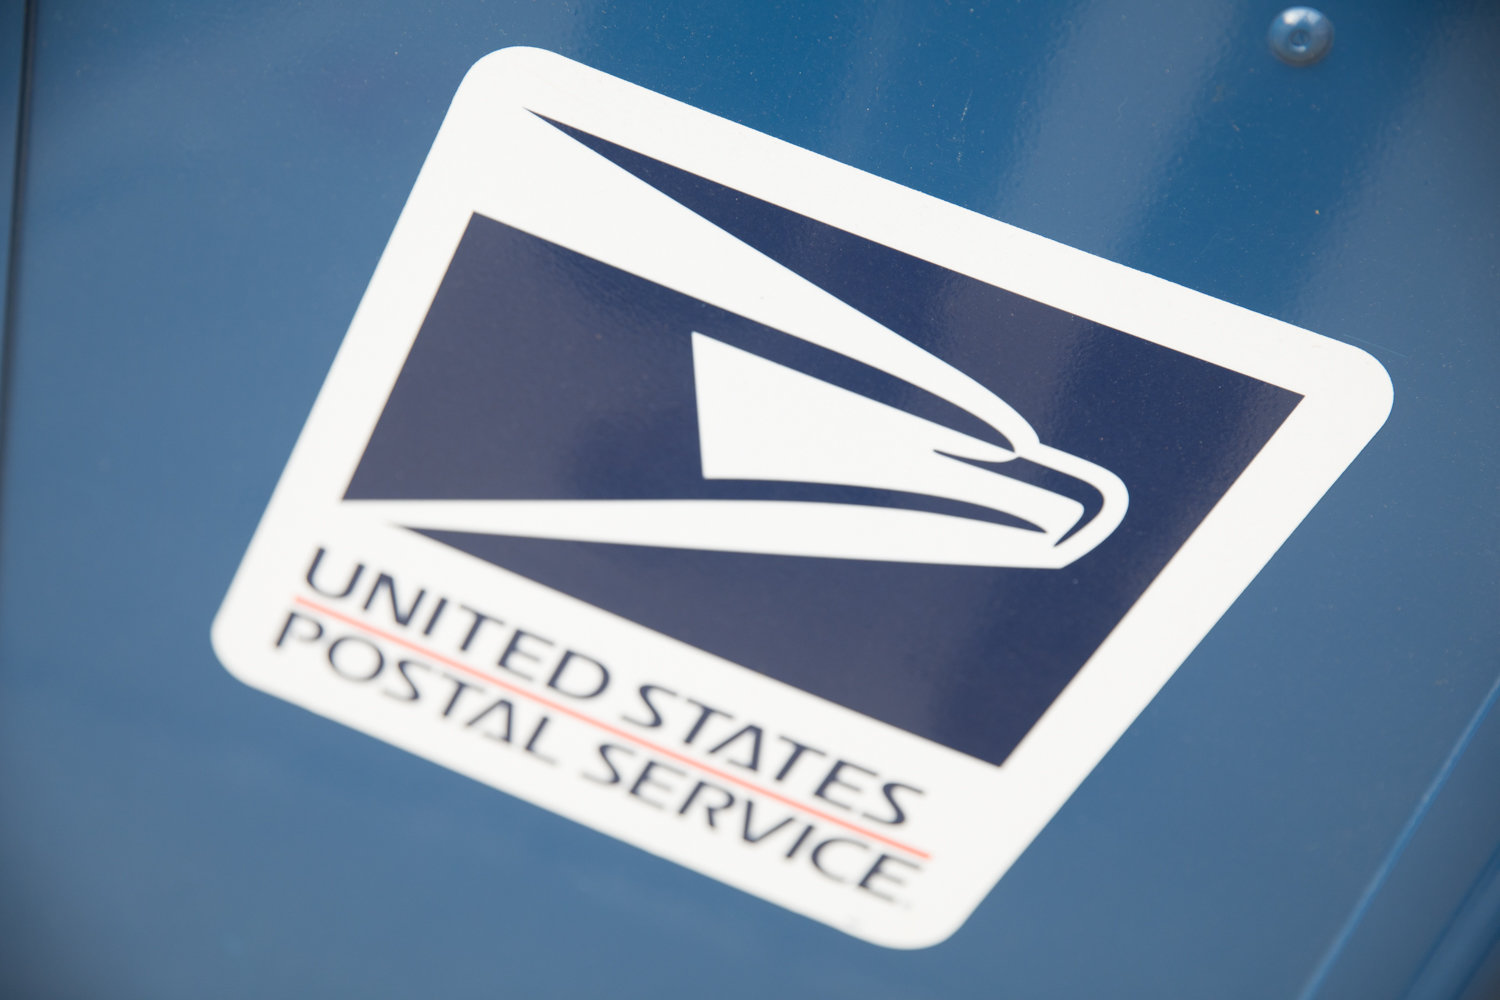 Victims of mail fishing are hoping the U.S. Postal Service can do more to safeguard their mail from low-tech thieves.